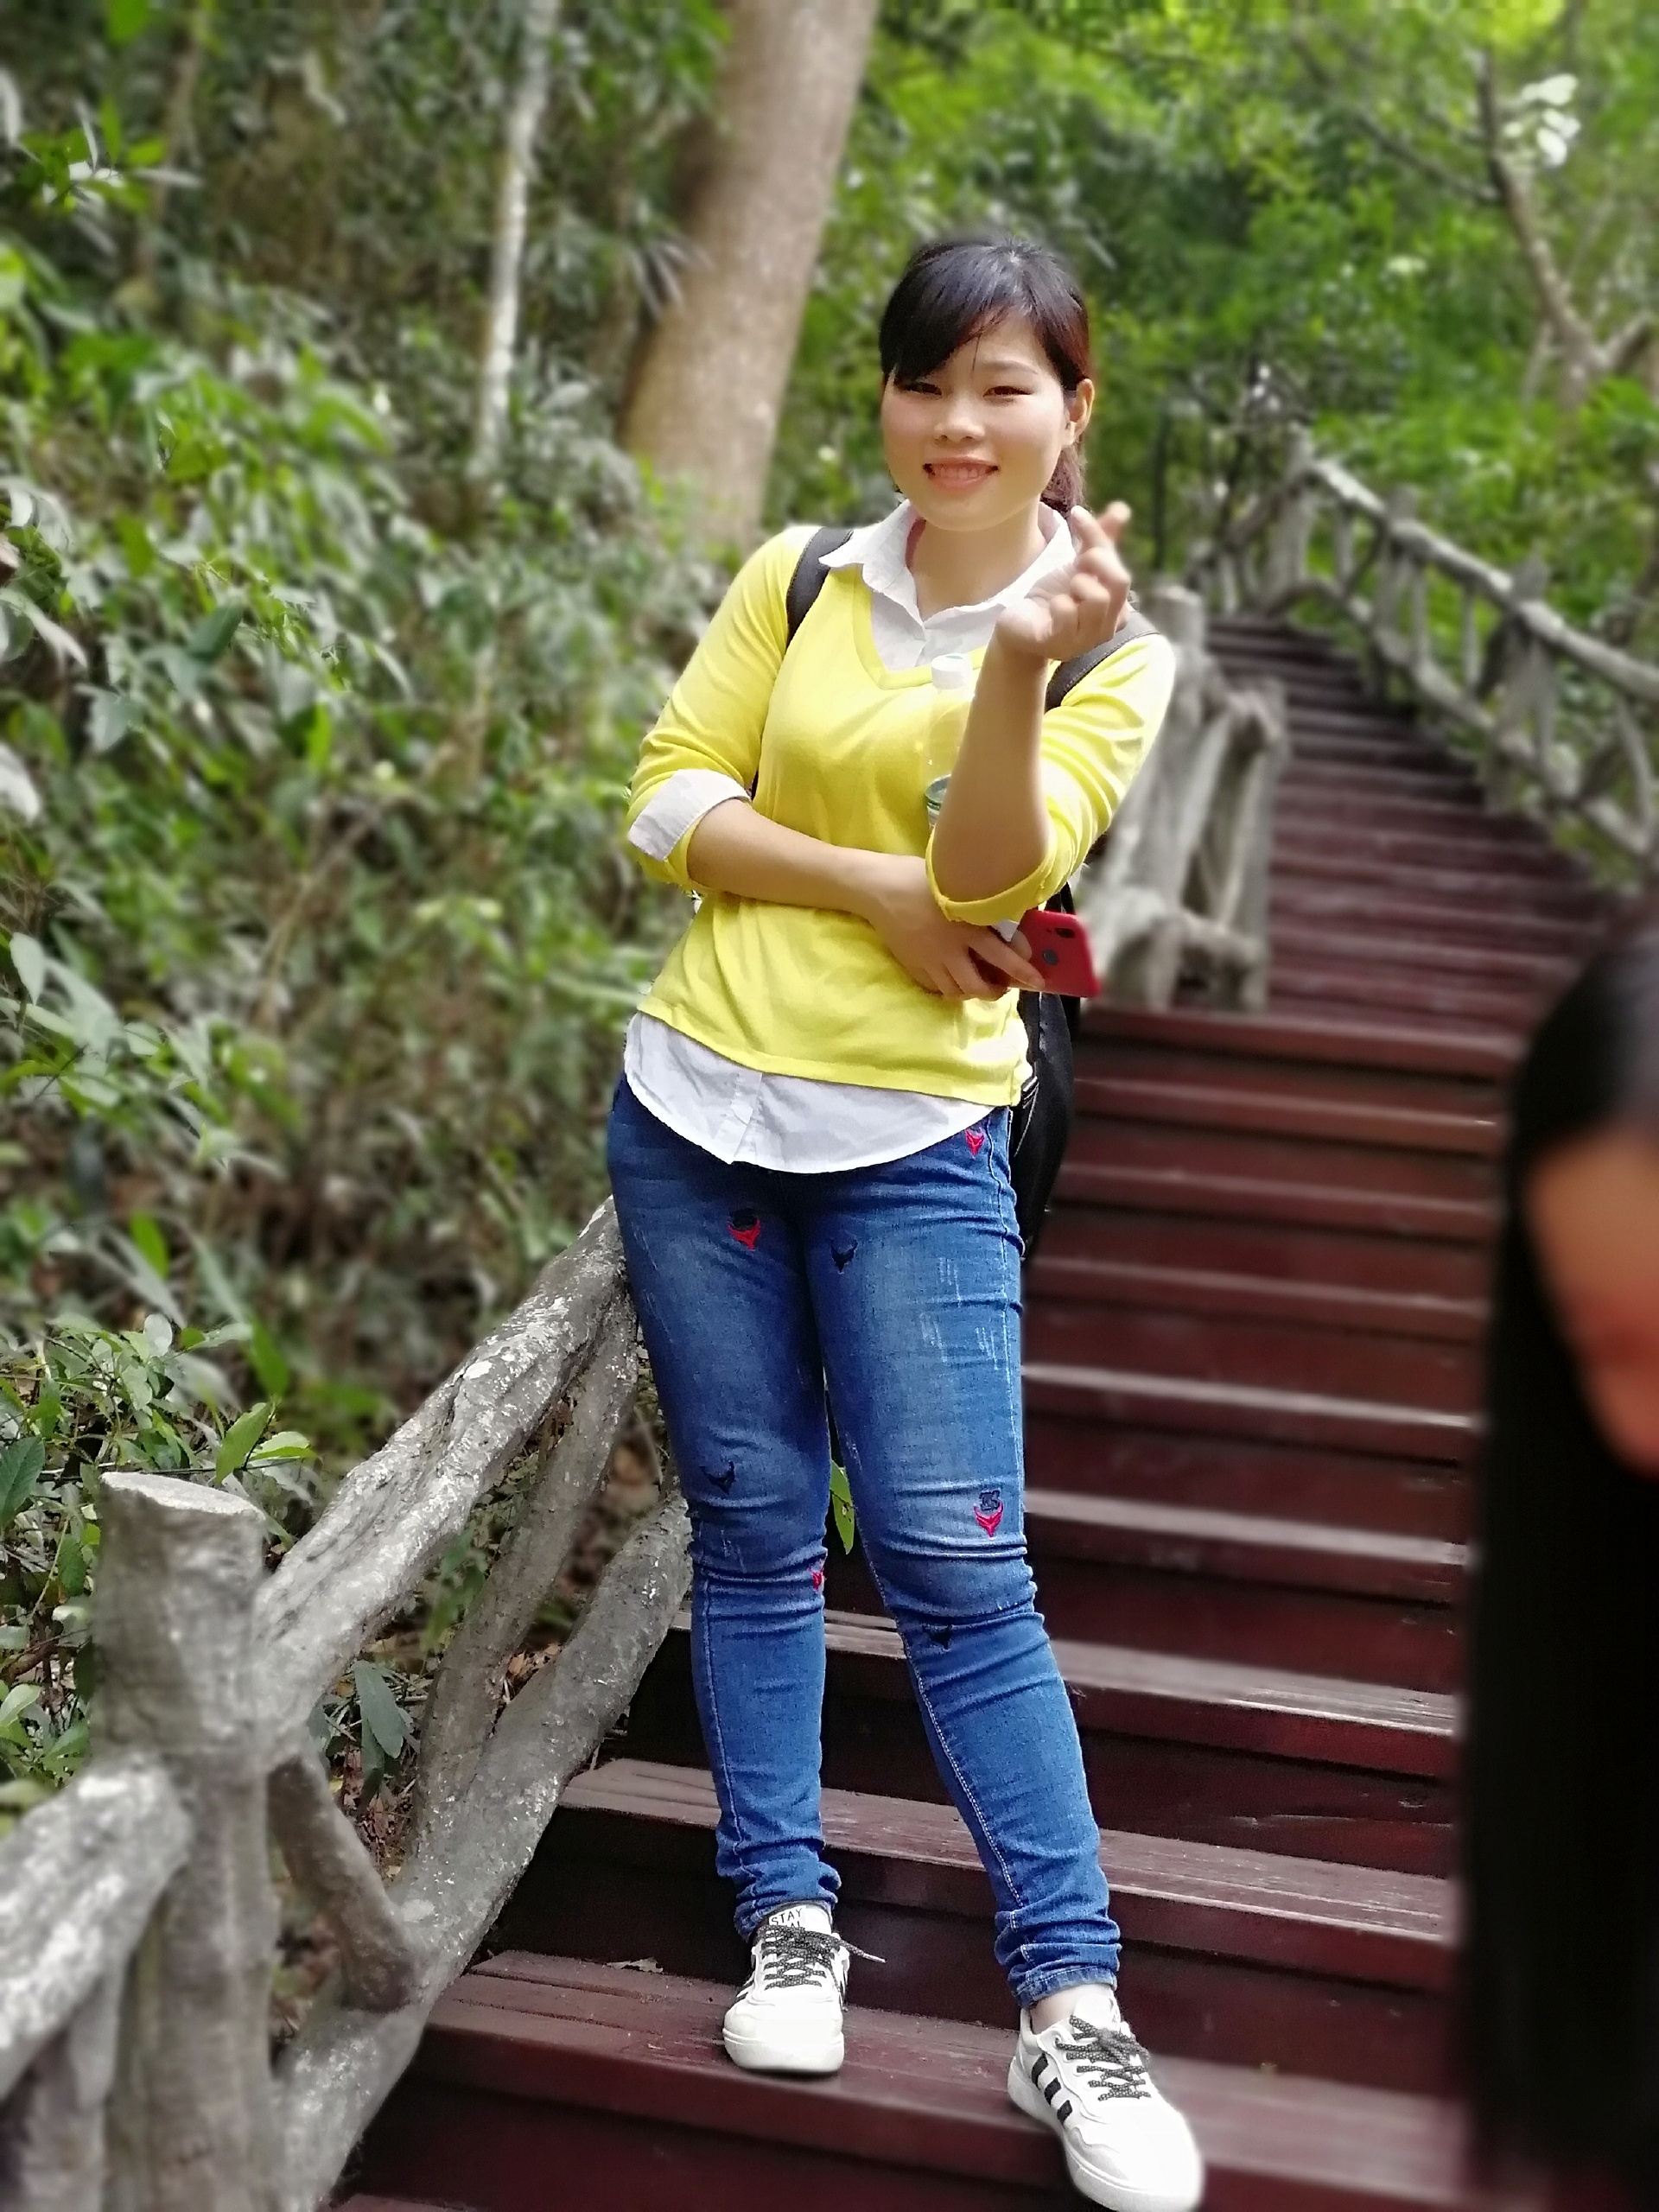 Climbing Yinping Mountain Together in the End of Autumn